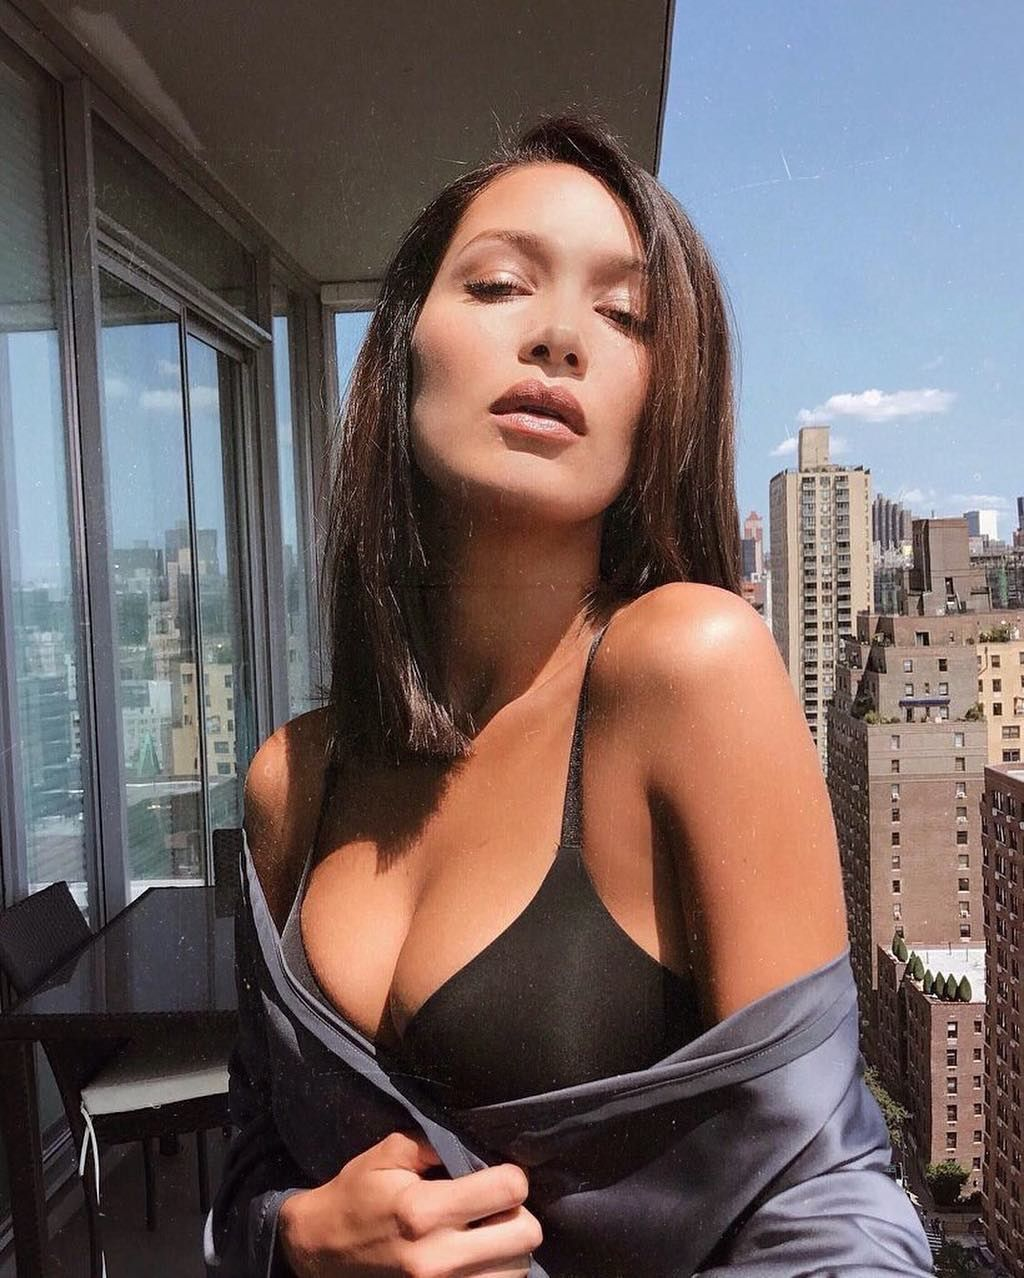 Pin by 현석 최 on bella hadid pinterest bella hadid models and